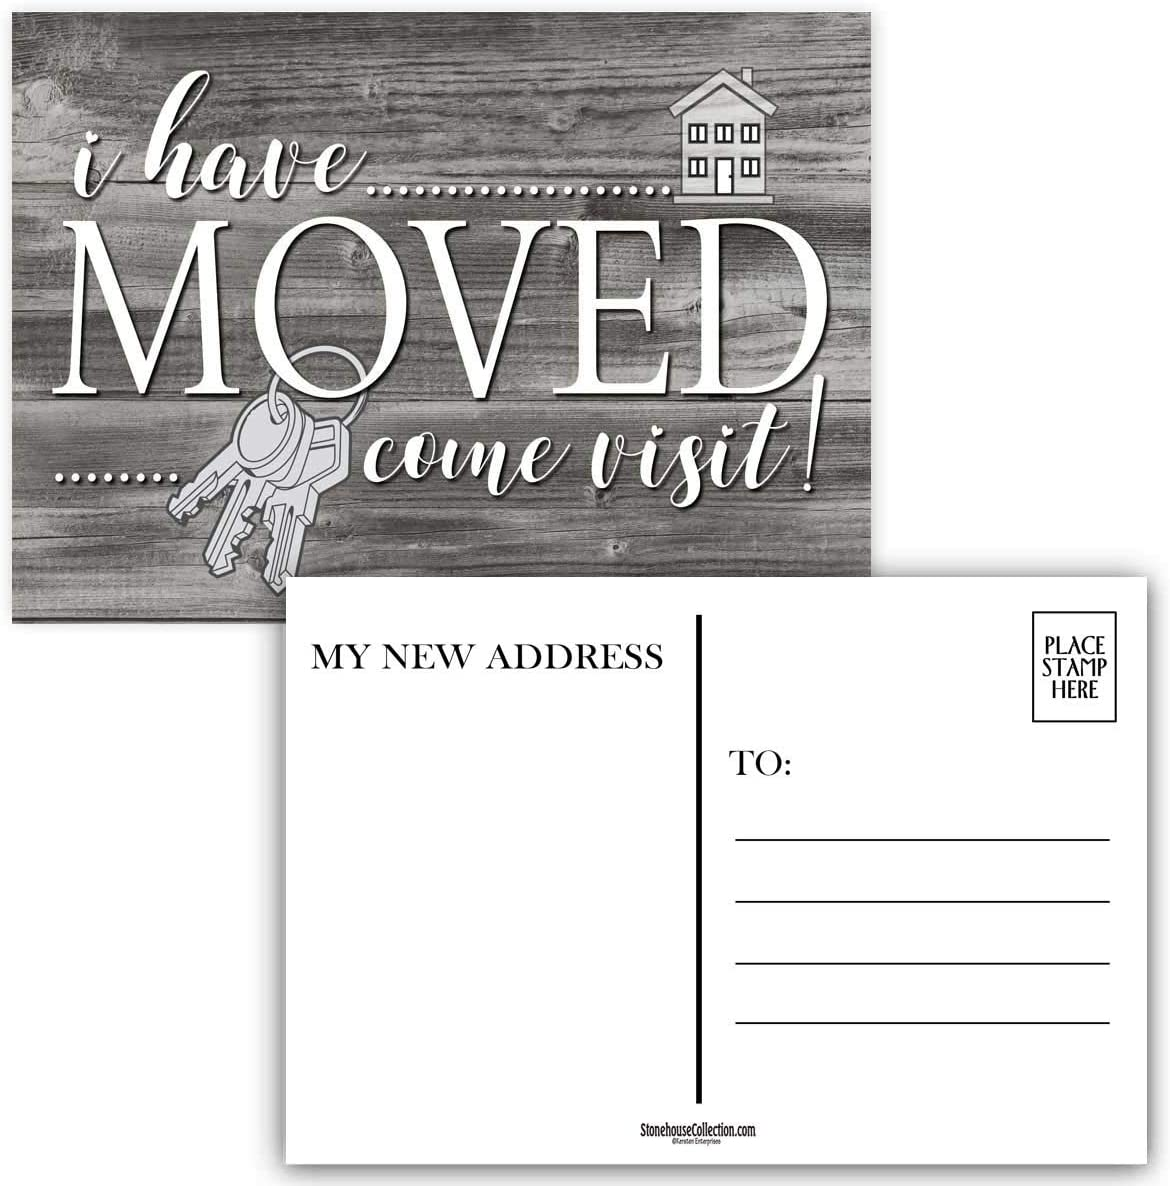 I Have Moved Postcards - 4 x 6 Moving Postcards - Change of Address Fill in The Blank Postcards (Rustic Keys)